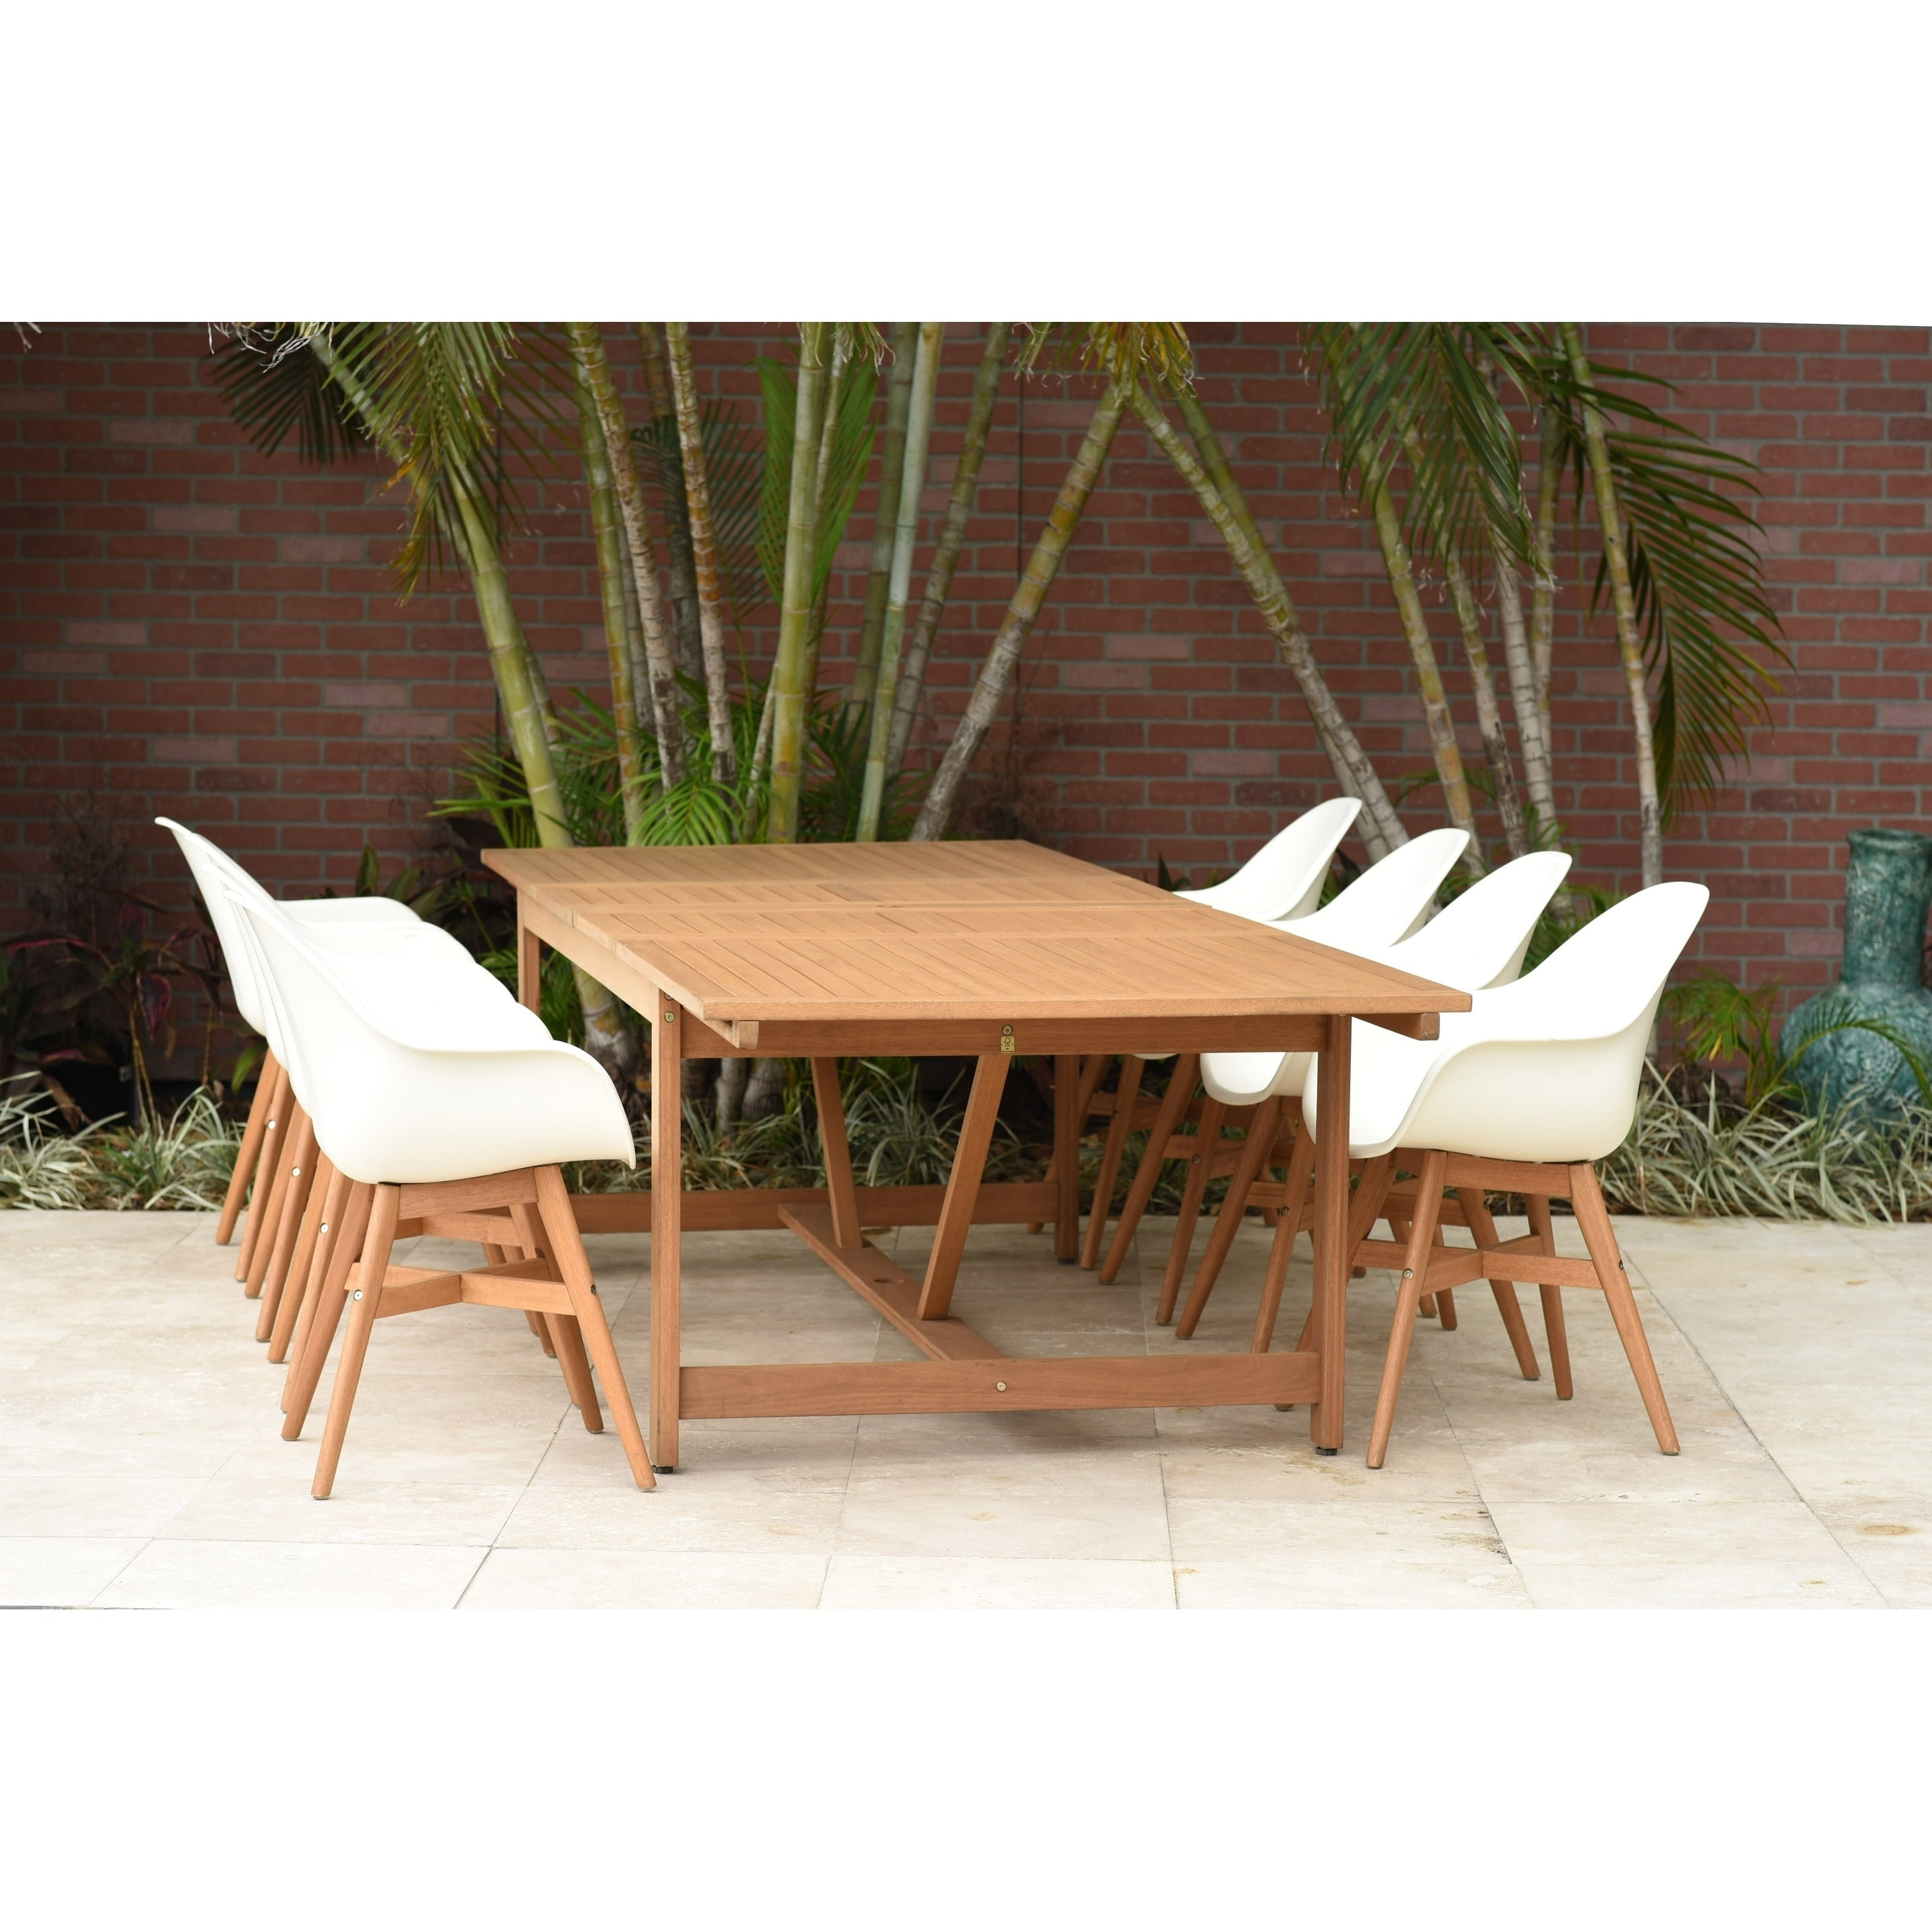 Amazonia deluxe hawaii white wood 9 piece rectangular patio dining set